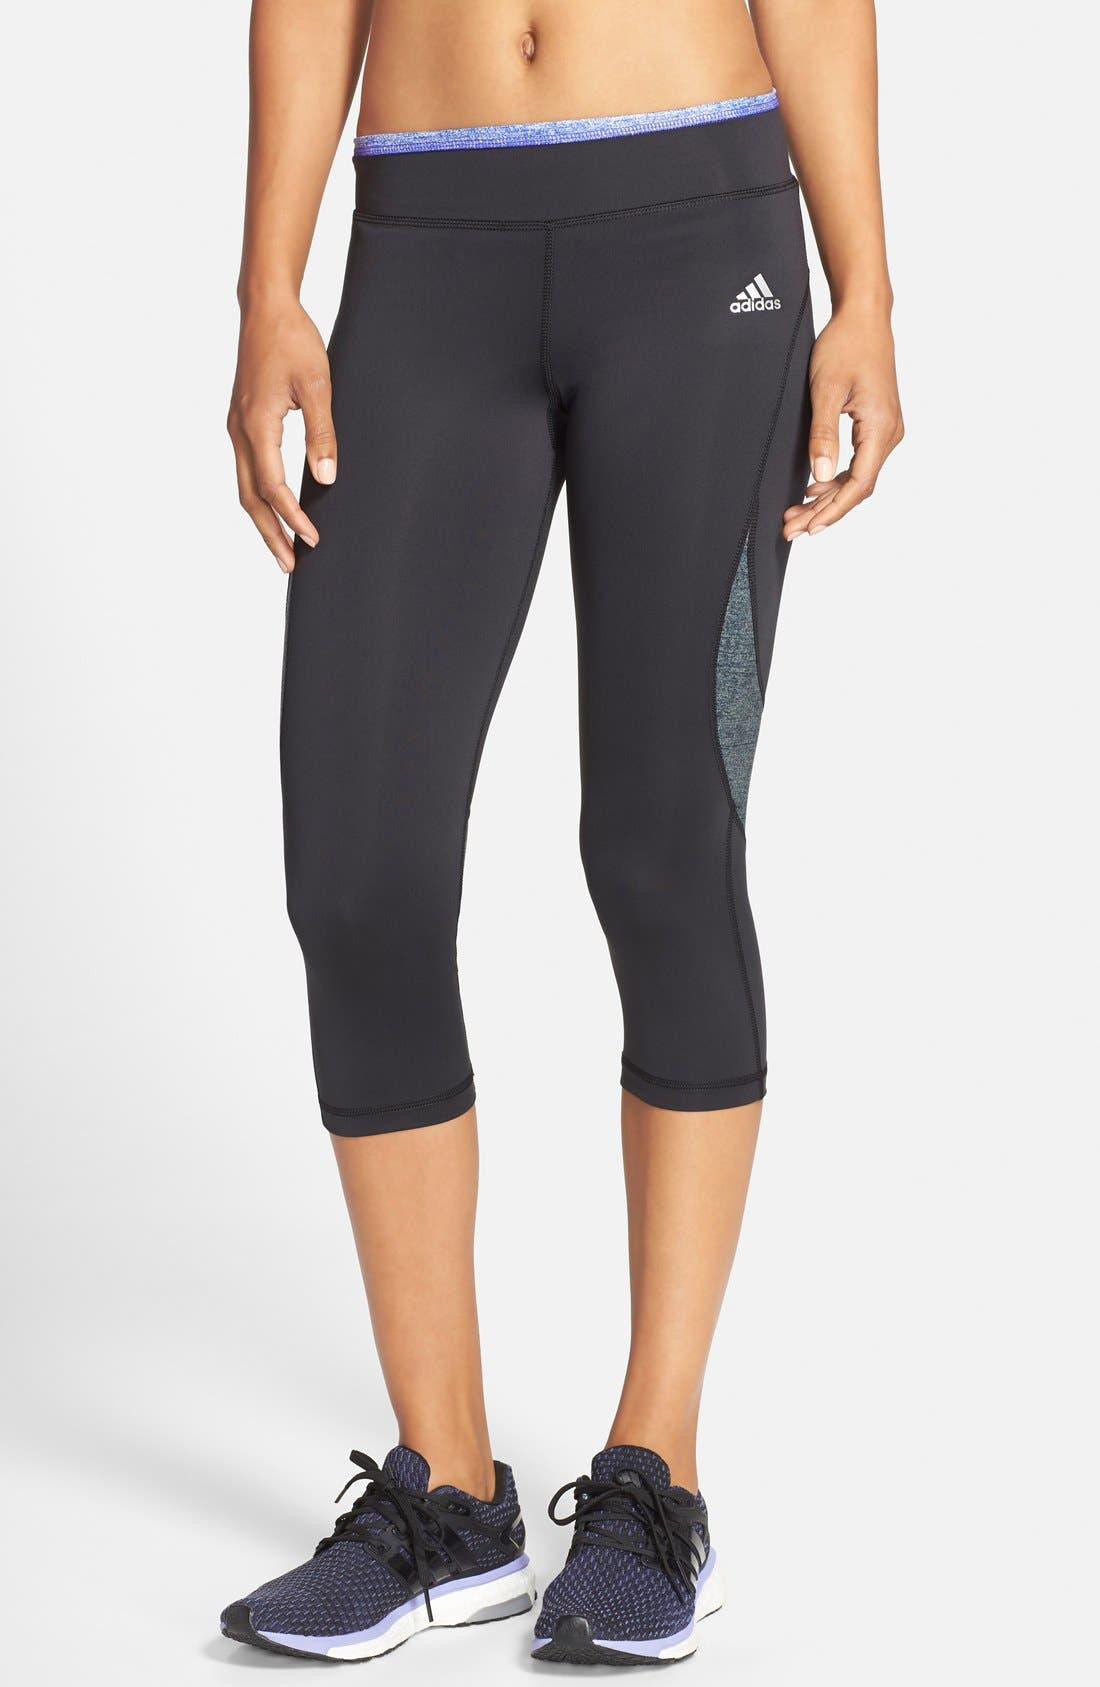 Alternate Image 1 Selected - adidas 'Techfit®' Three Quarter Tights